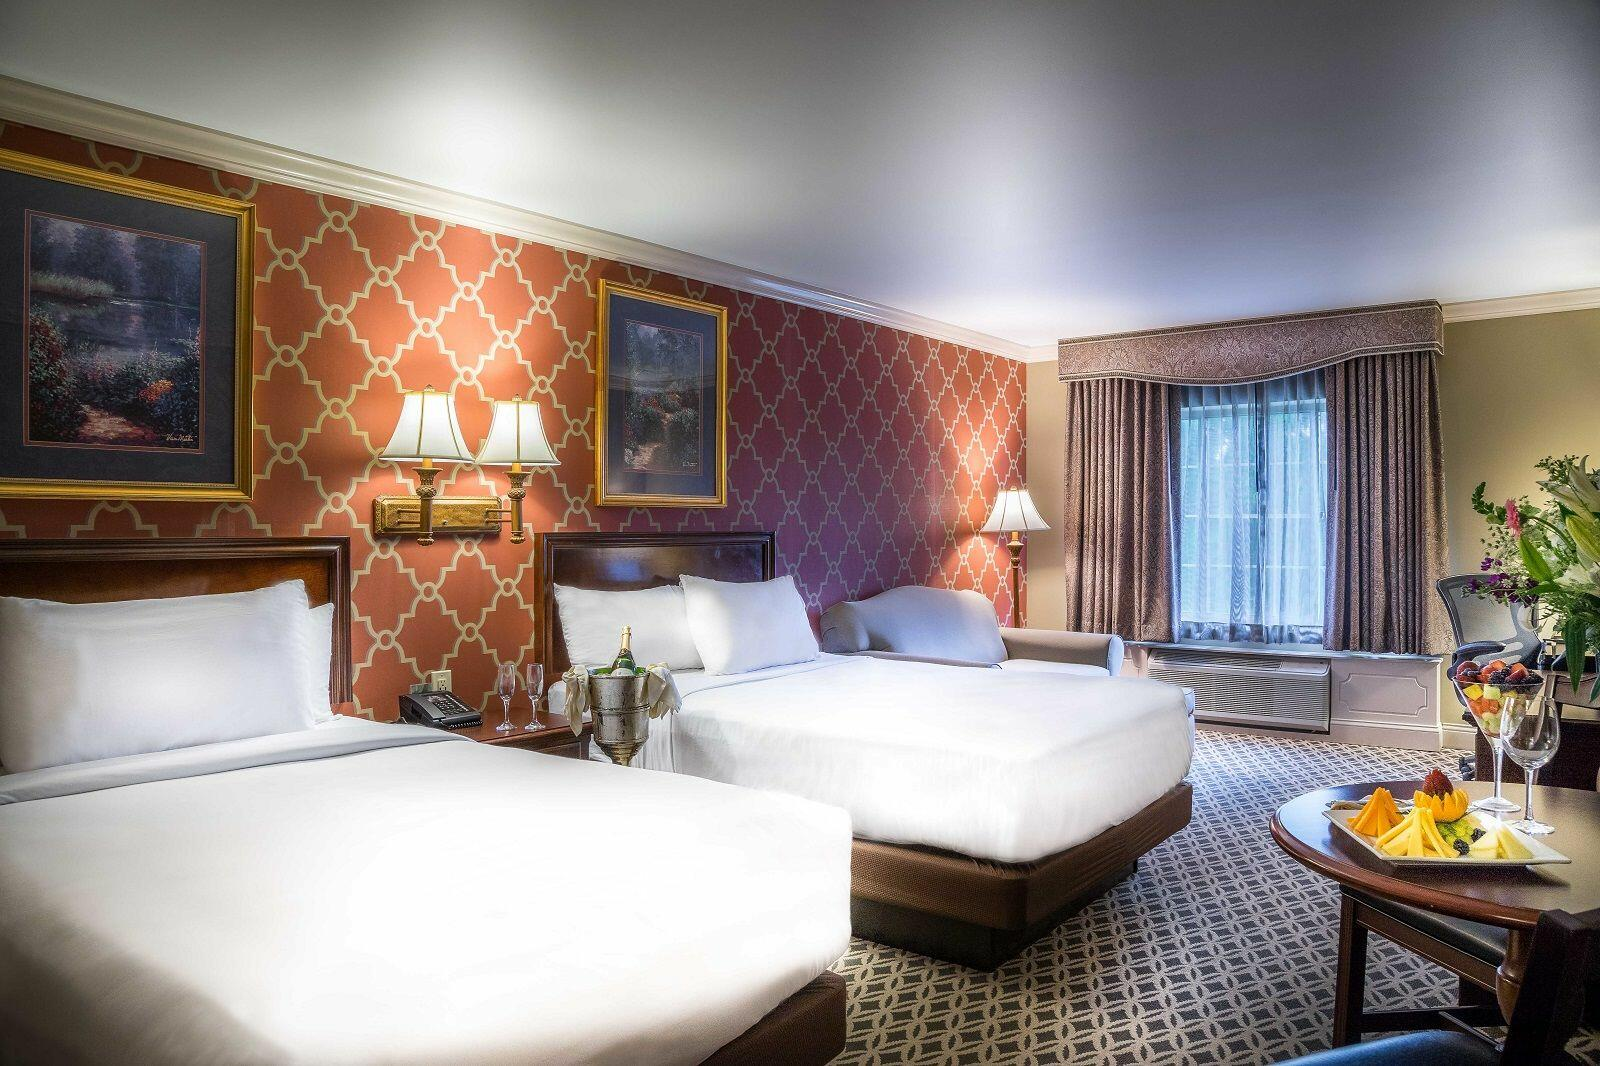 Hotel room with two double beds